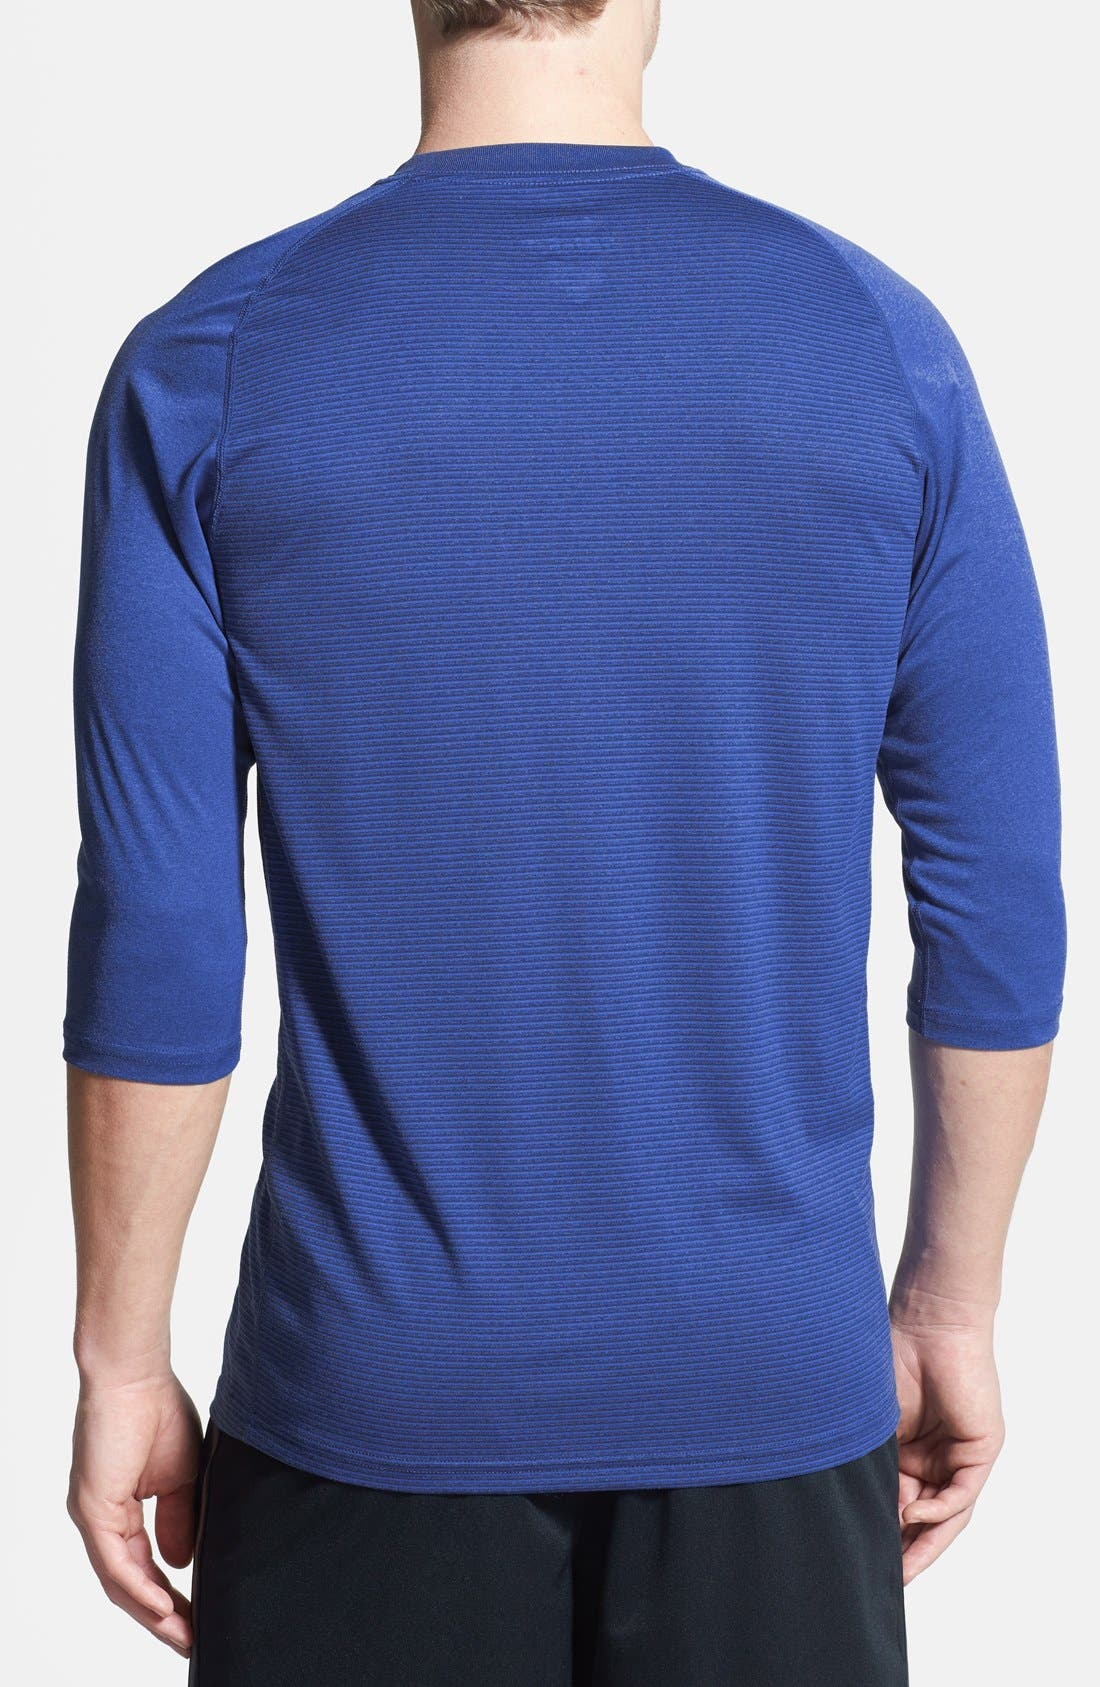 Alternate Image 2  - Nike Dri-FIT Three Quarter Length Raglan Sleeve T-Shirt